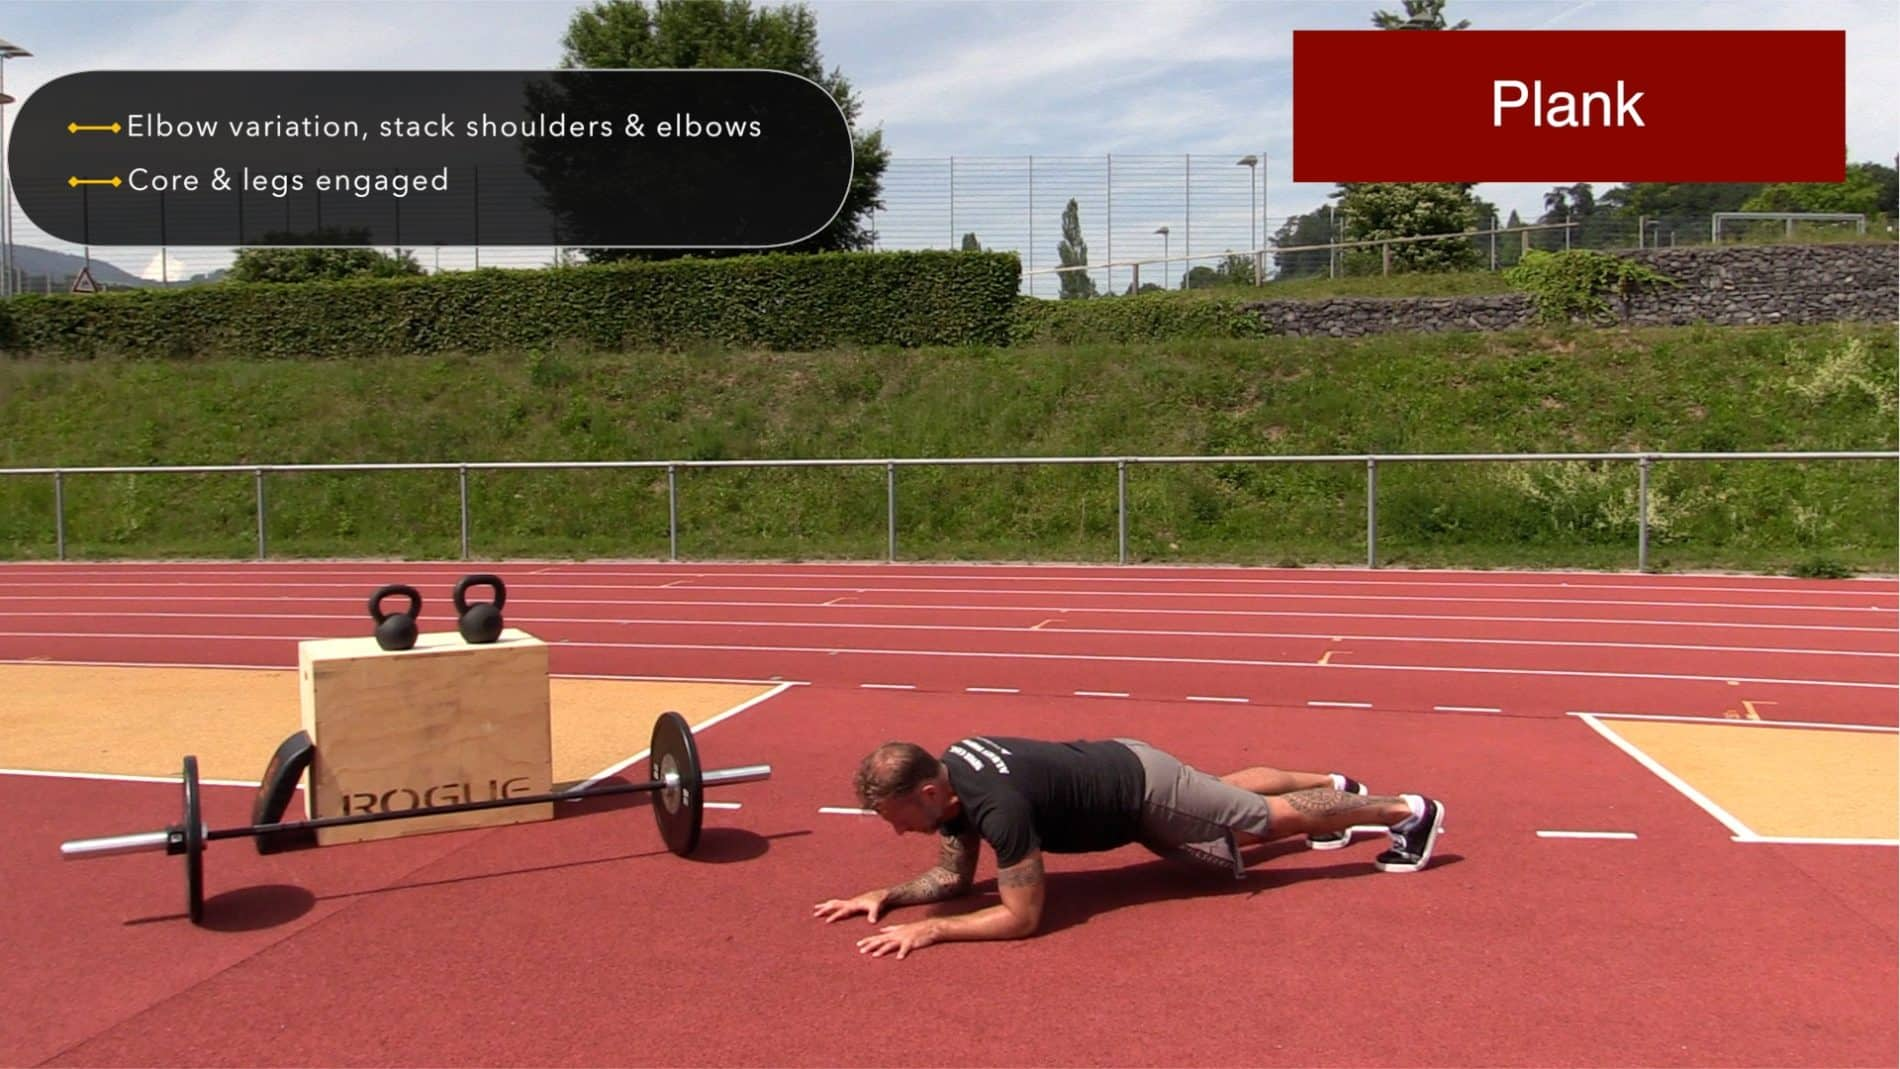 Plank Exercise: How To